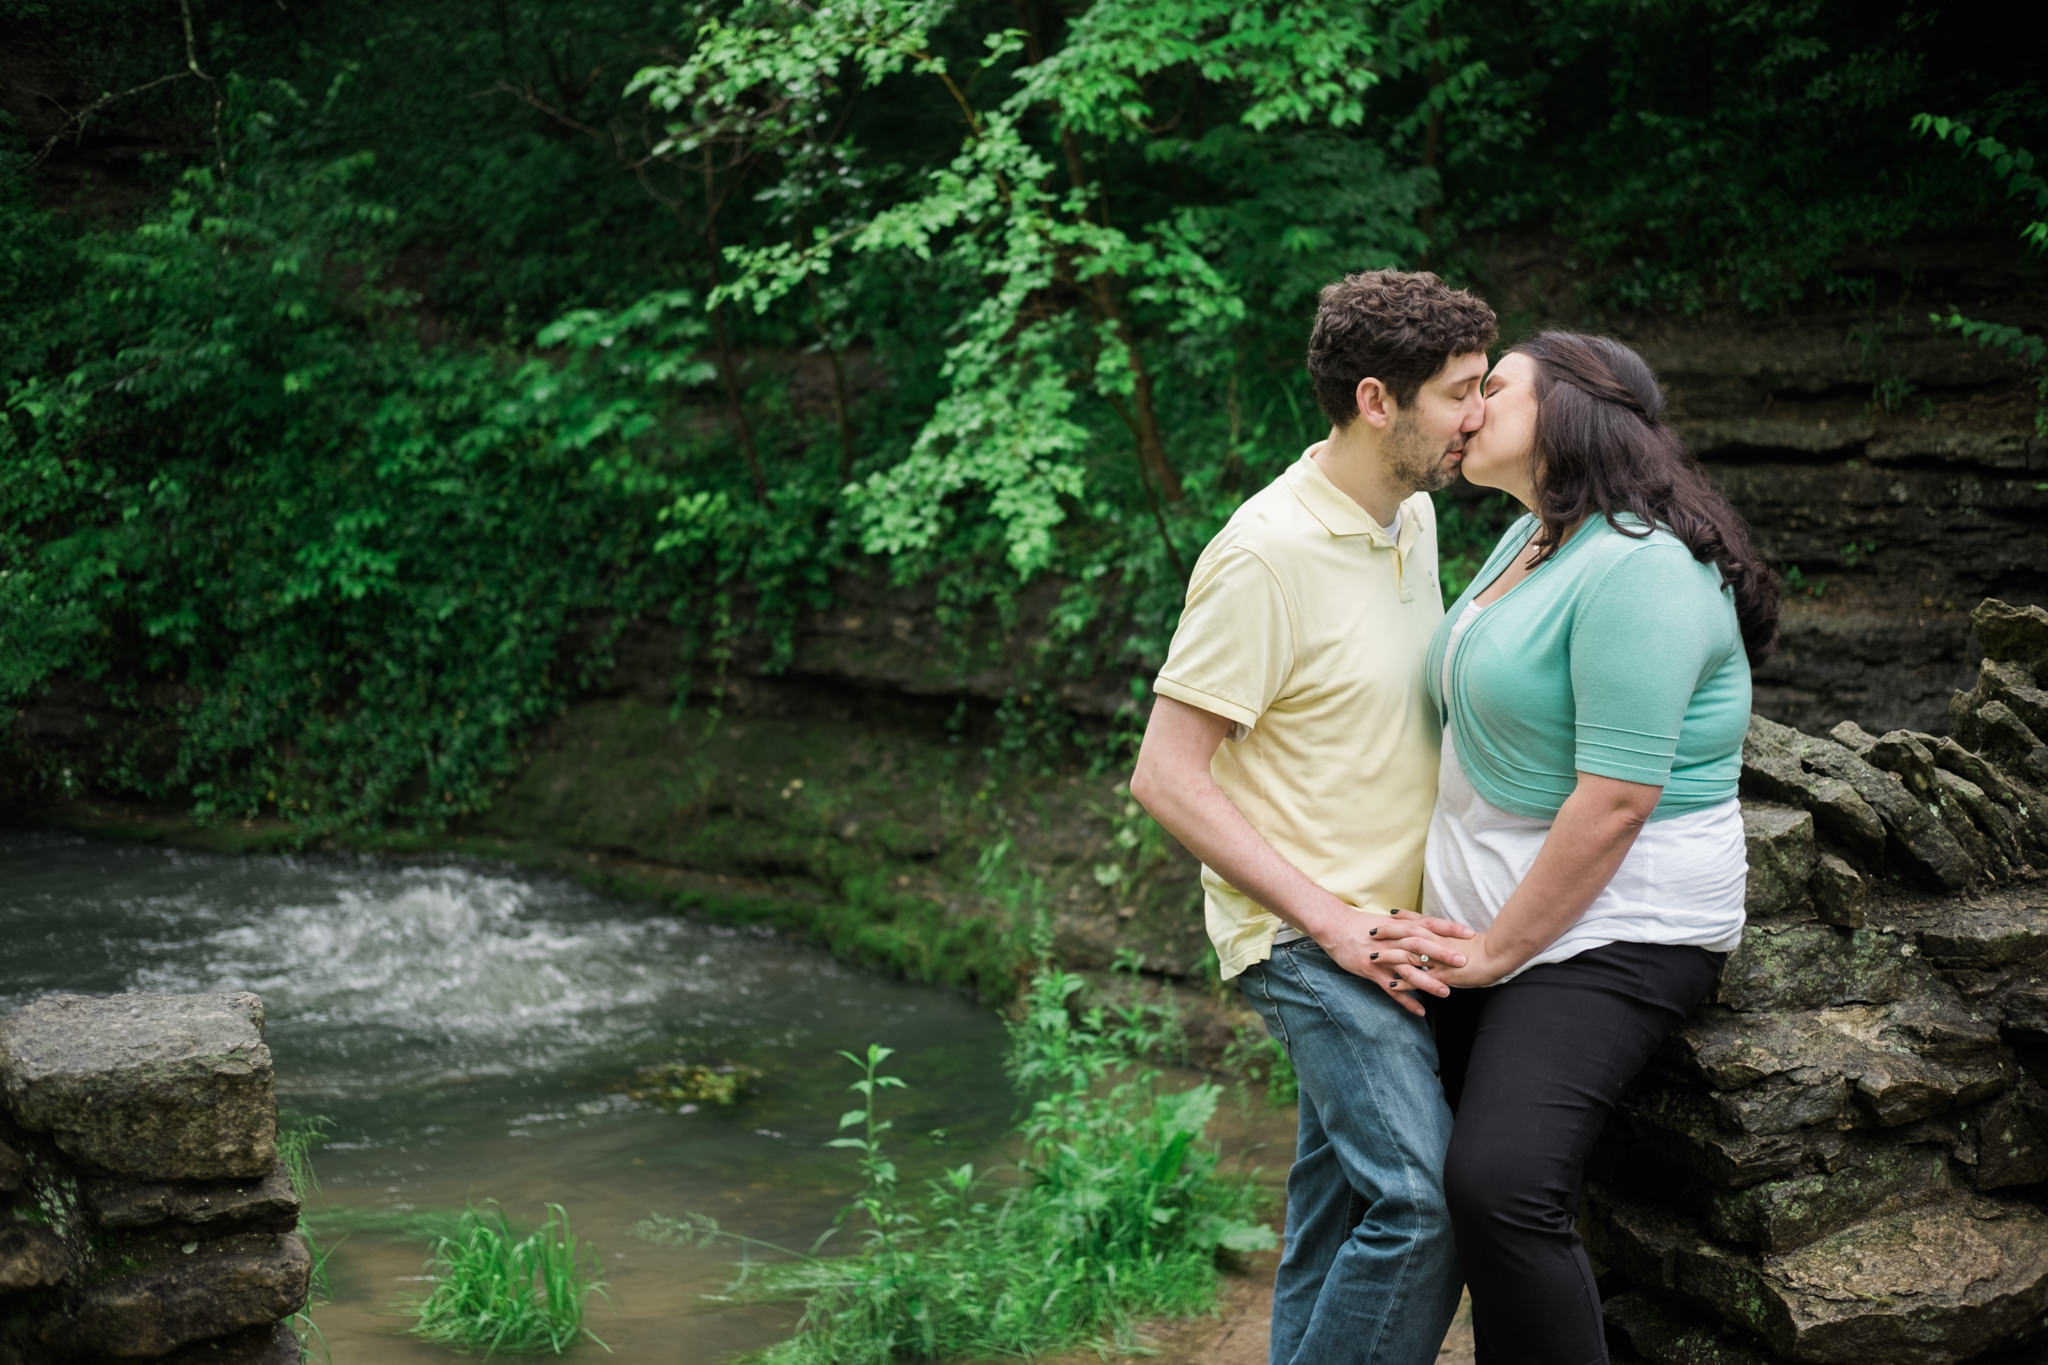 Lee&Steven_Engagement_Blog_0013.jpg